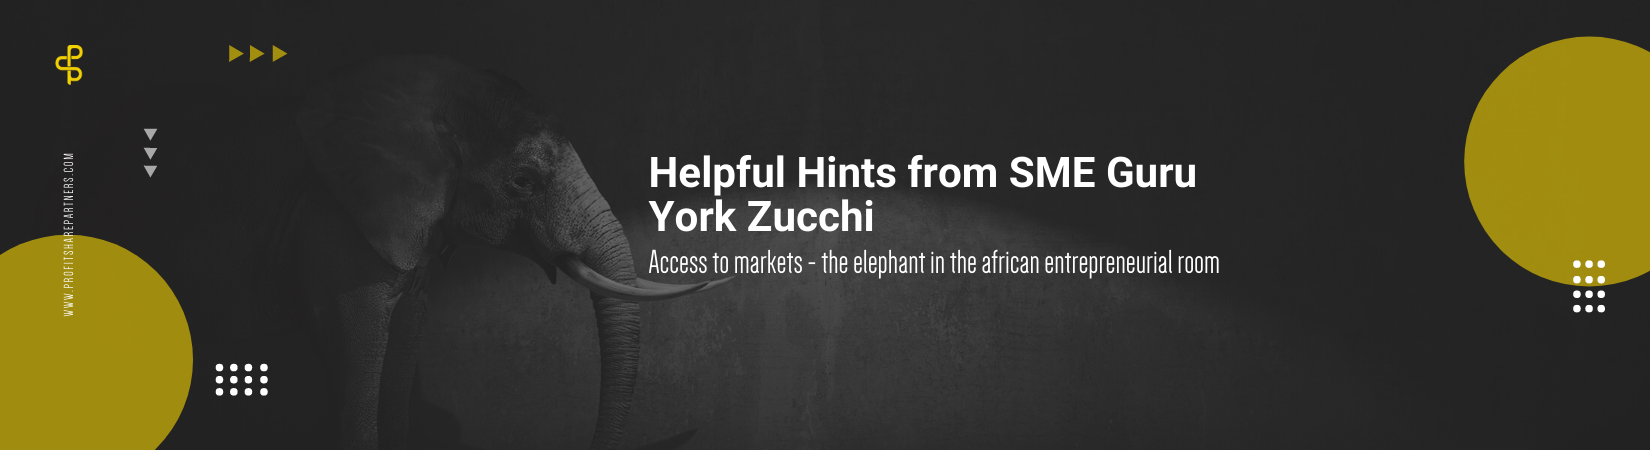 Access to Markets: The Elephant in the African Entrepreneurial Room